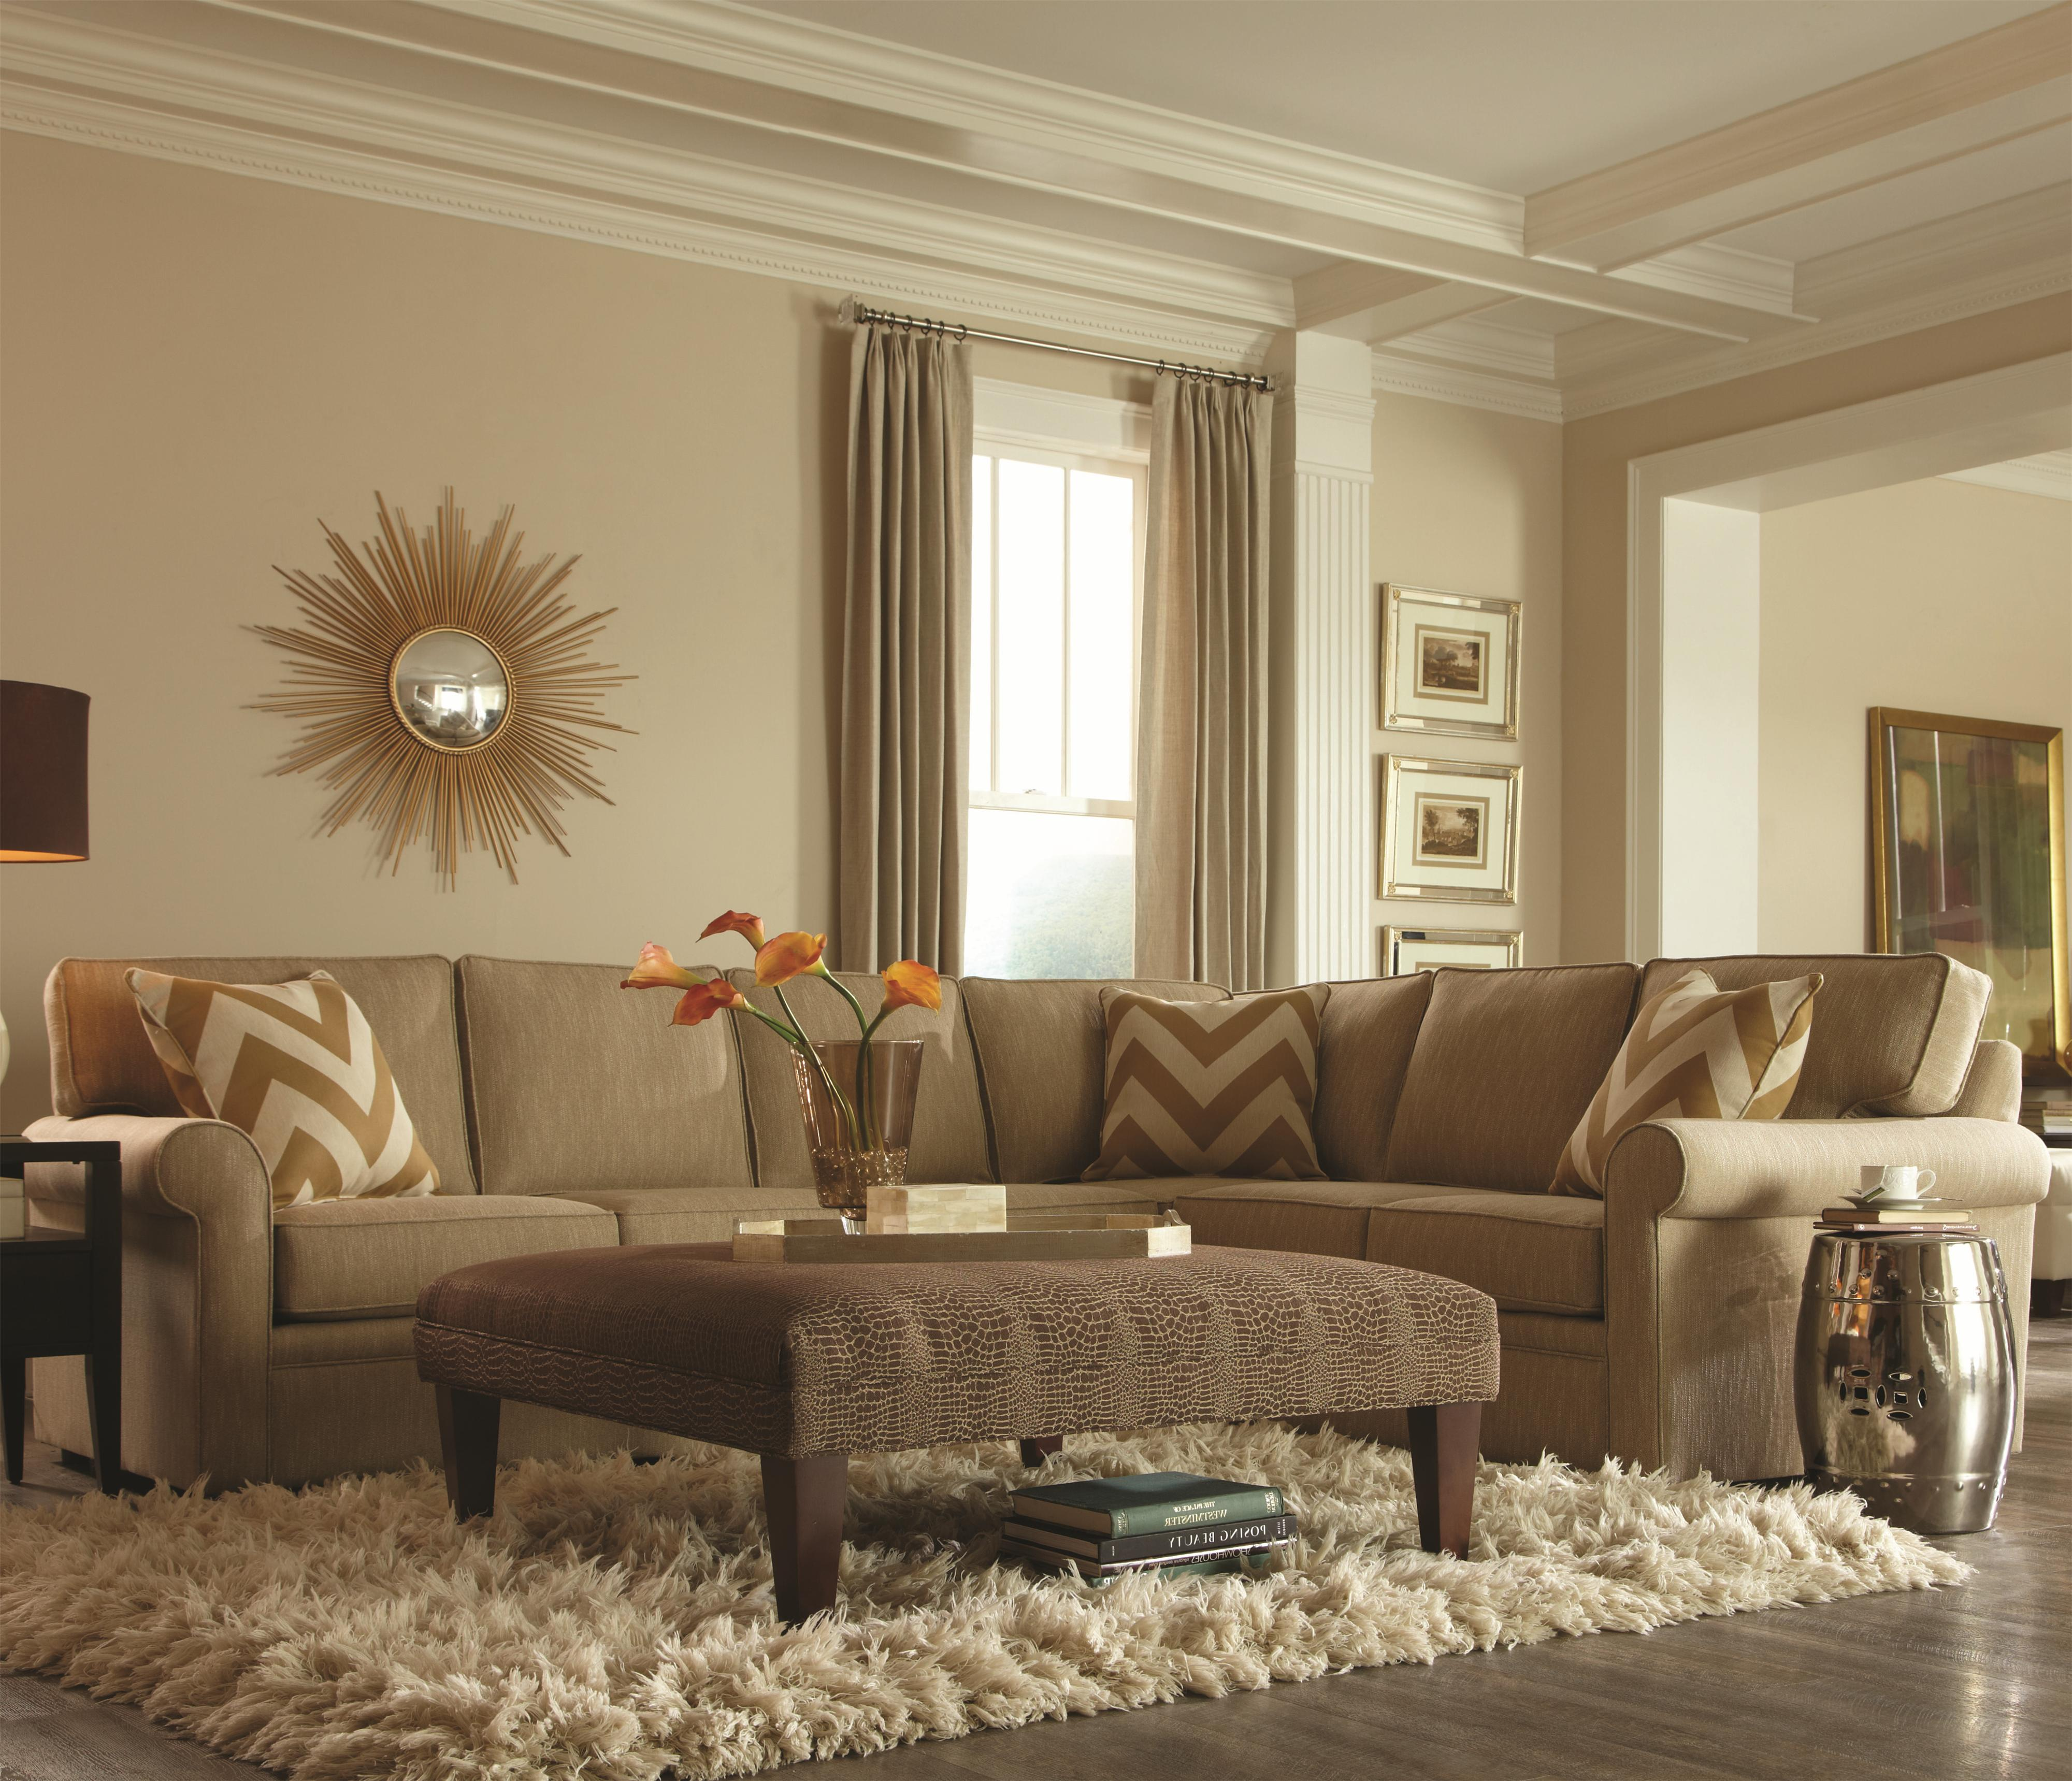 Rowe Brentwood Transitional L Shaped Sectional With Rolled Arms   AHFA   Sofa  Sectional Dealer Locator